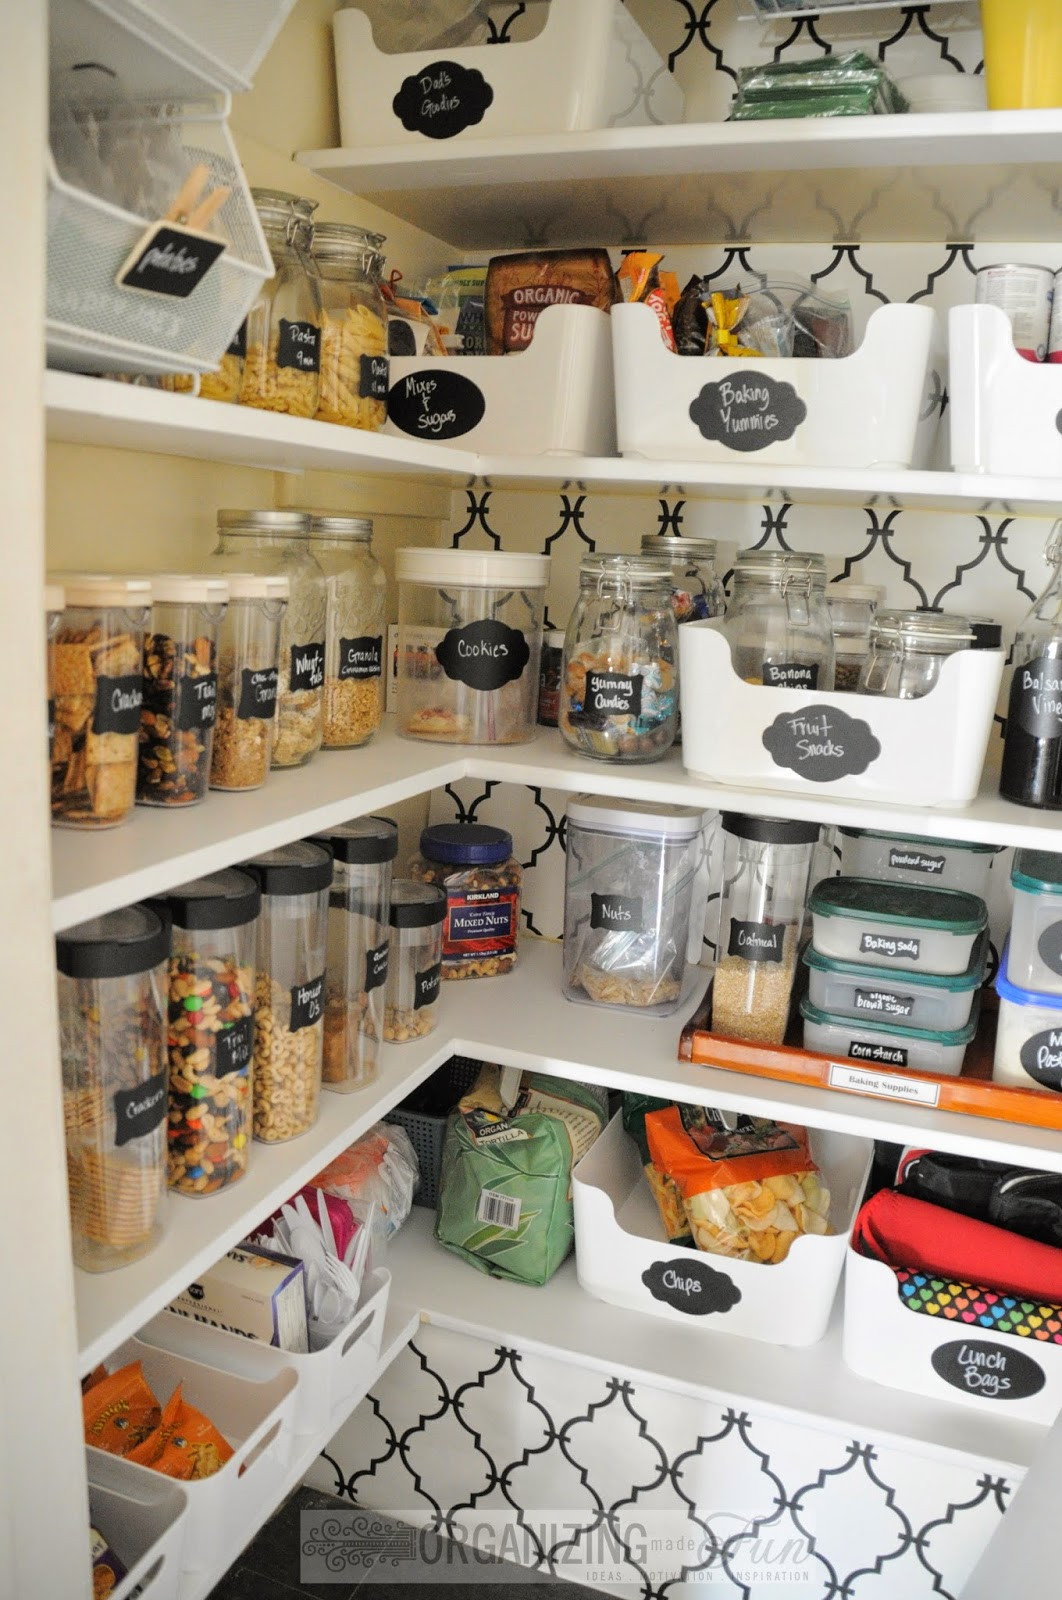 Best ideas about Organizing A Pantry . Save or Pin Pantry Organization Inspiration Organizing Made Fun Now.